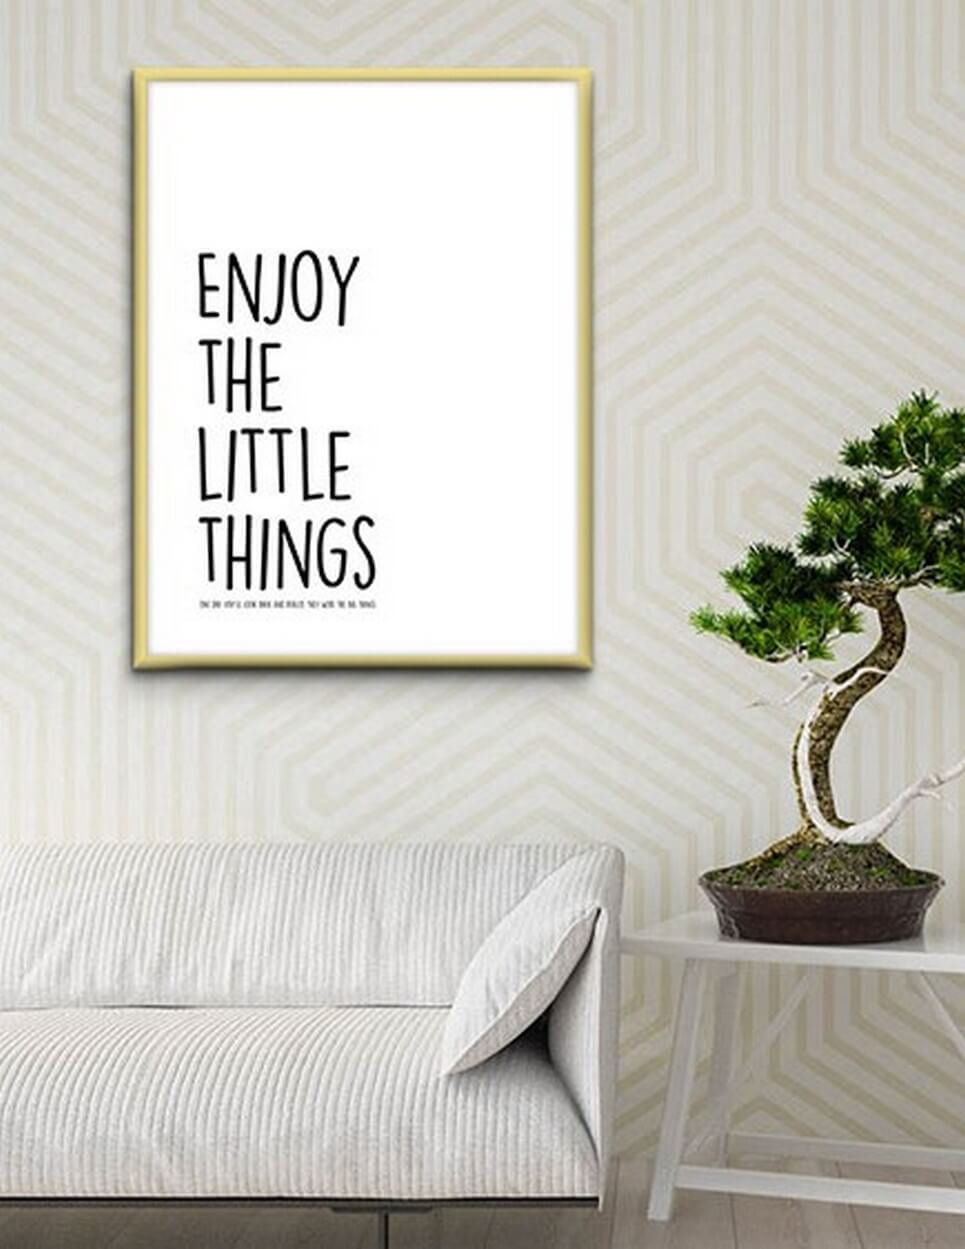 Home Wall Poster – Enjoy The Little Things